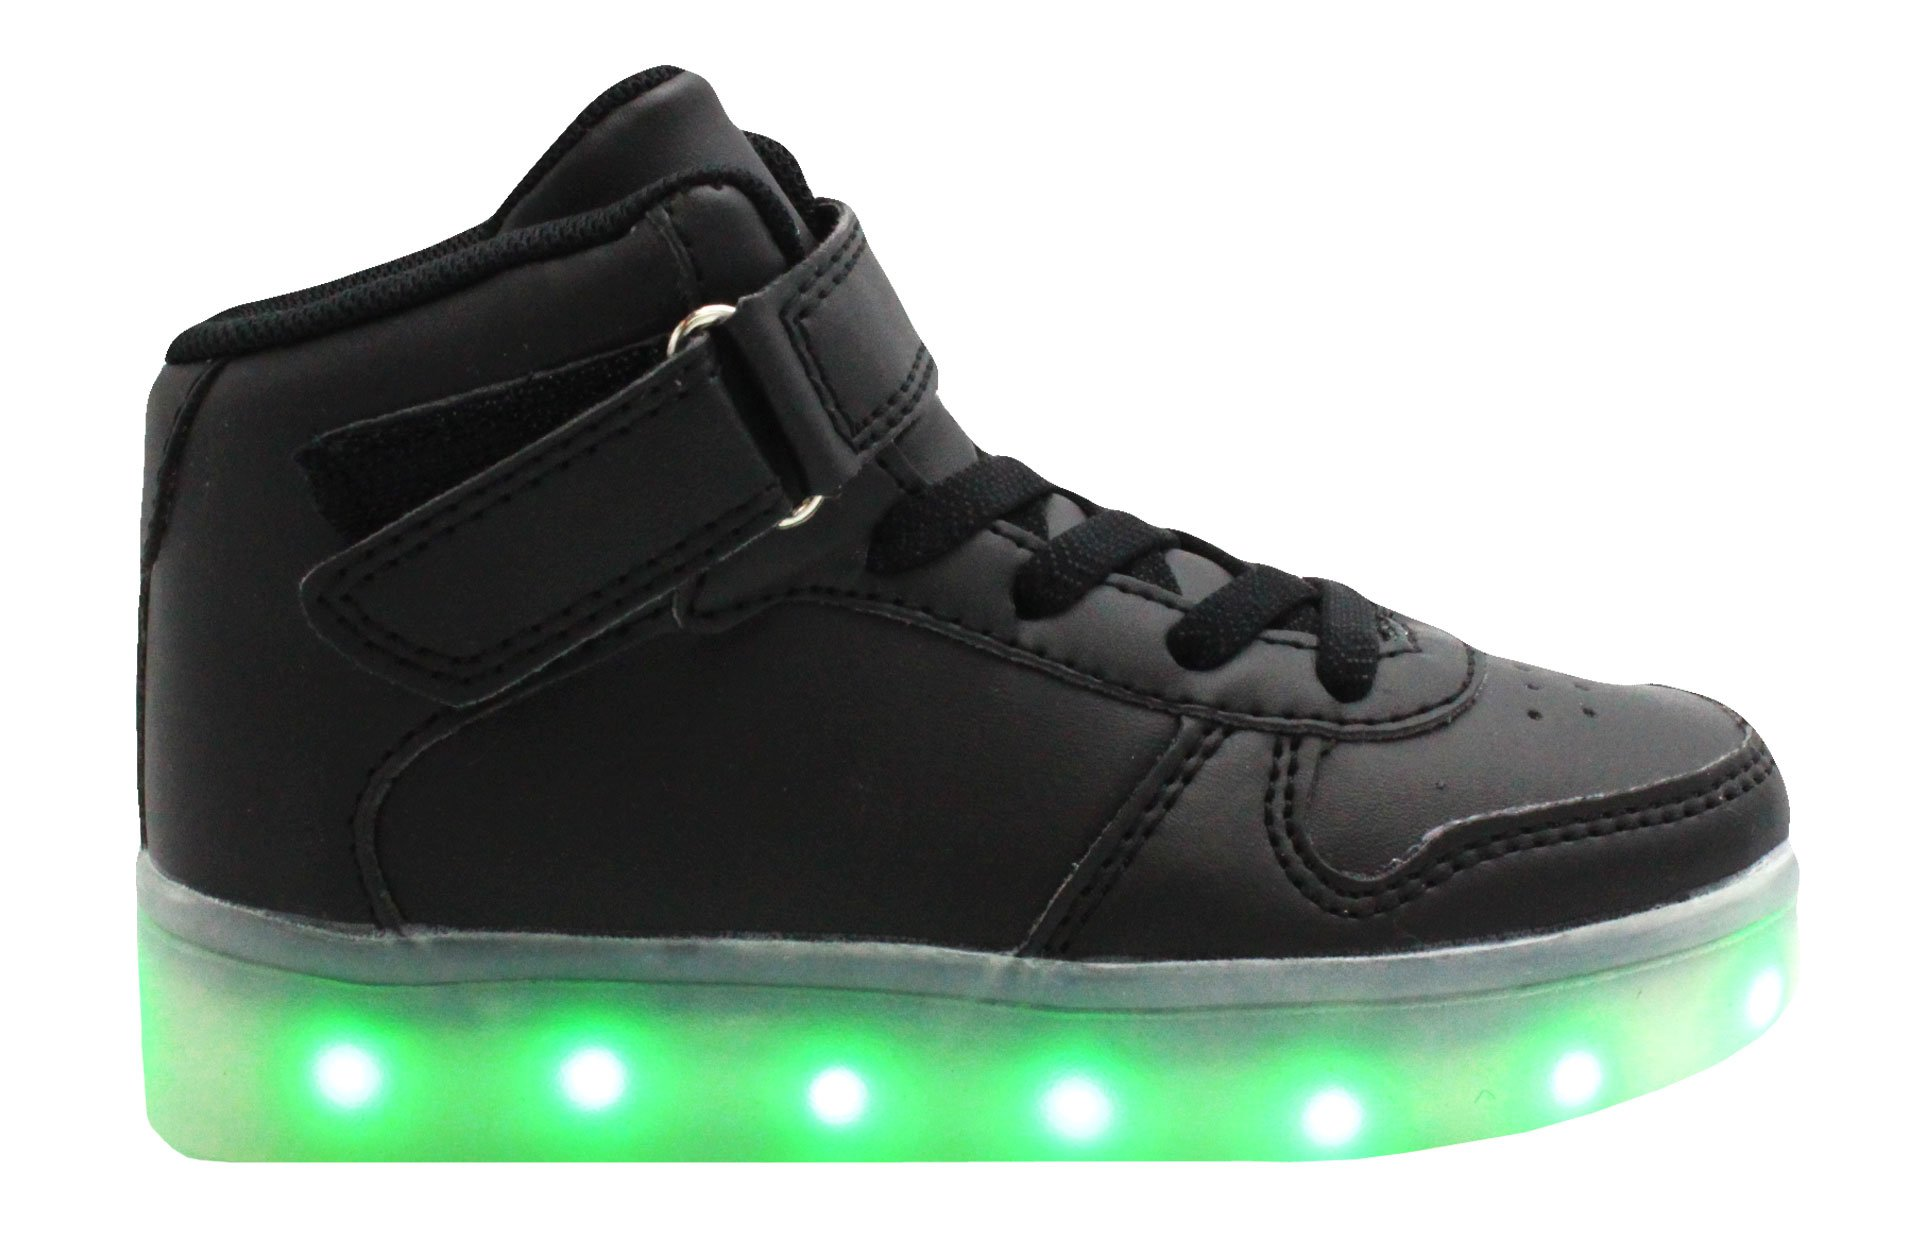 Transformania Toys Galaxy LED Shoes Light Up USB Charging High Top Lace & Strap Kids Sneakers(Black) 11